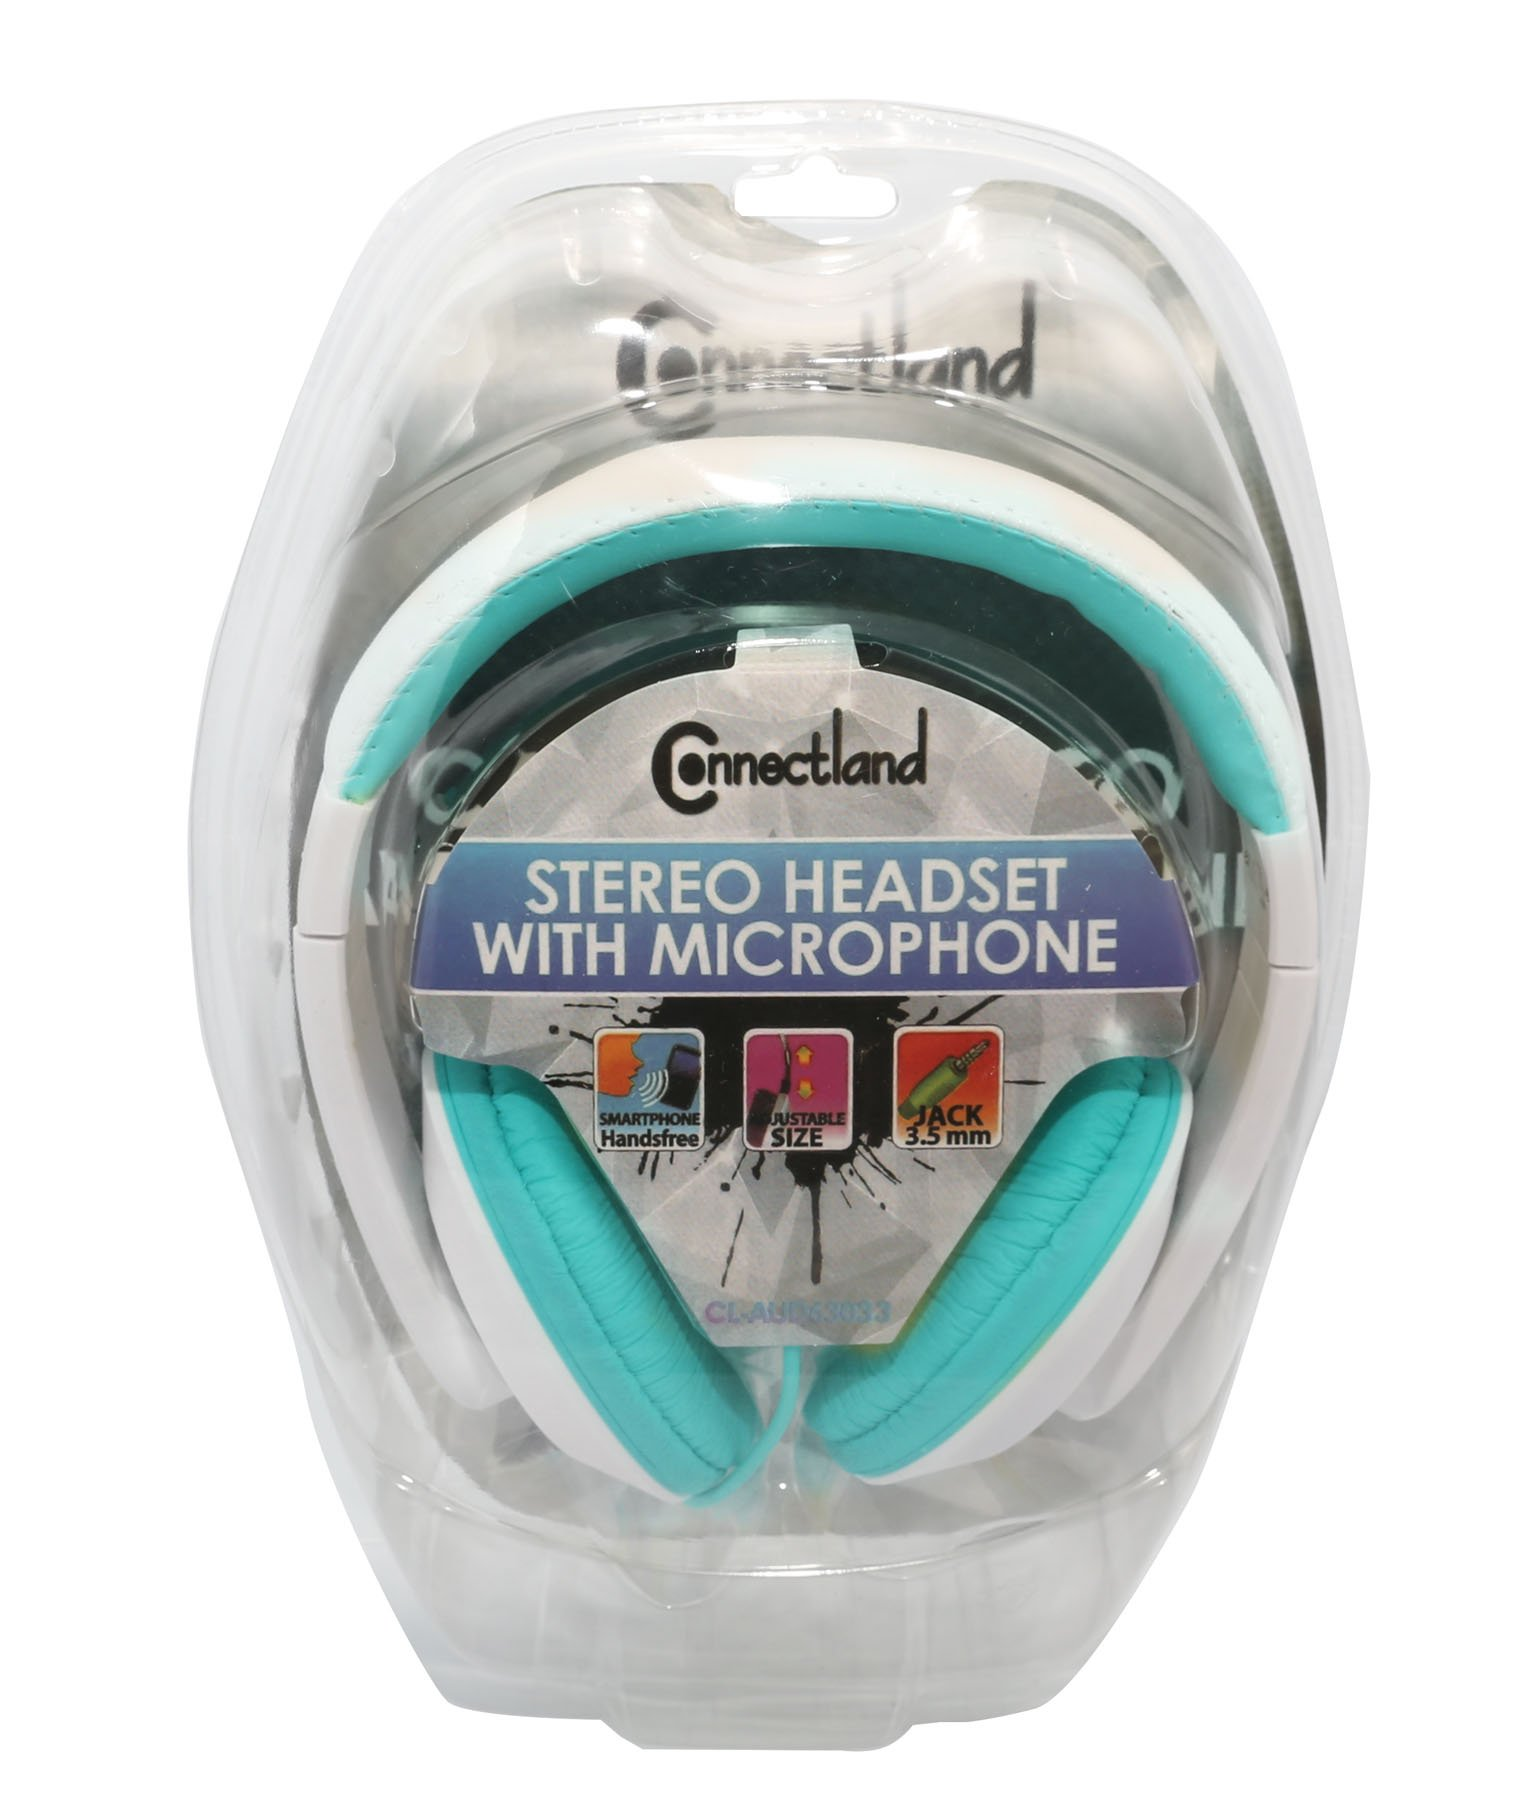 Connectland Stereo Wired Headphone & Microphone Lightweight 40mm Speaker Music Gaming Stylish Teal CL-AUD63035 by Connectland (Image #7)